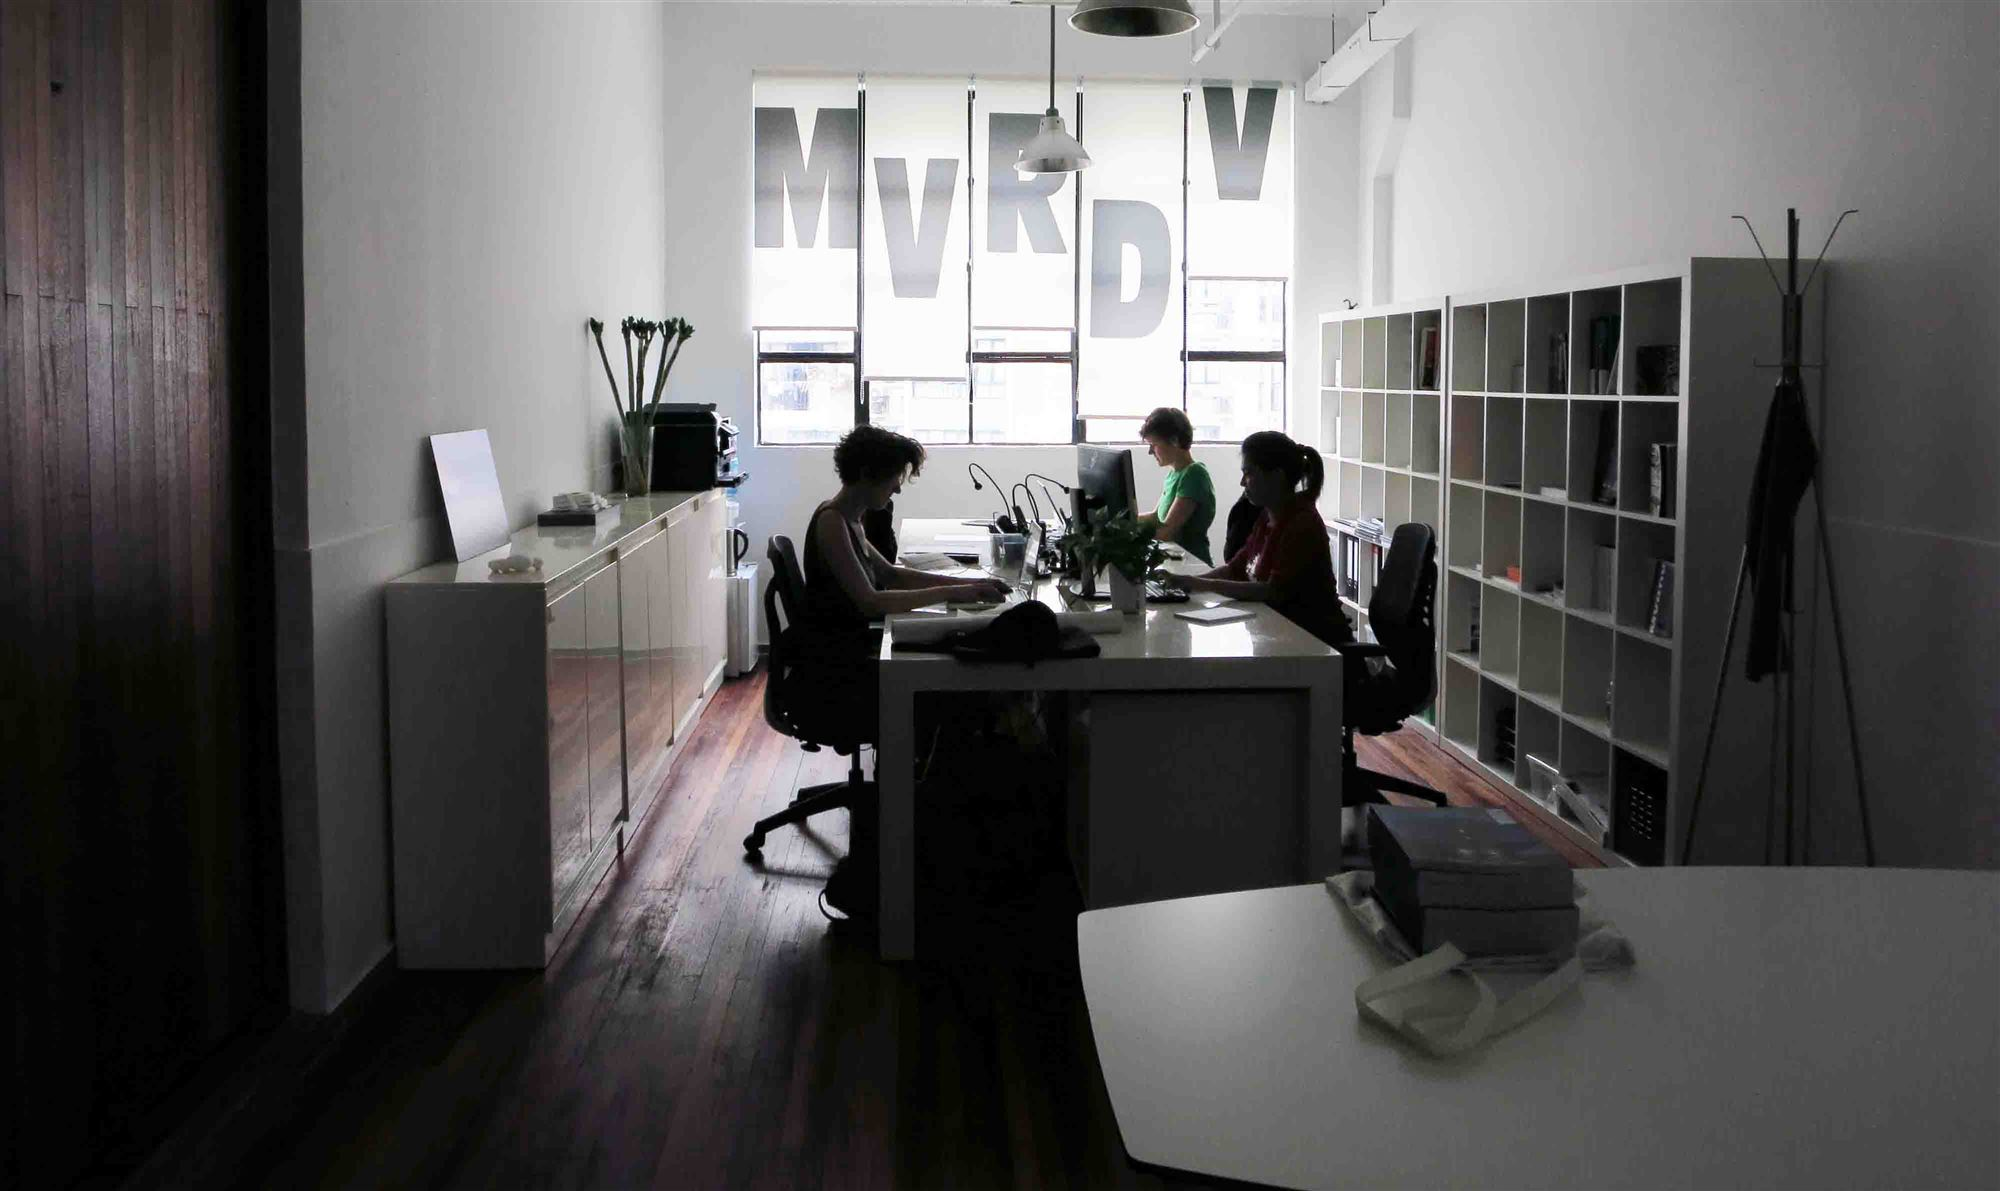 MVRDV Jobs: Mandarin Speaking Office Manager and PR Assistant - MVRDV China